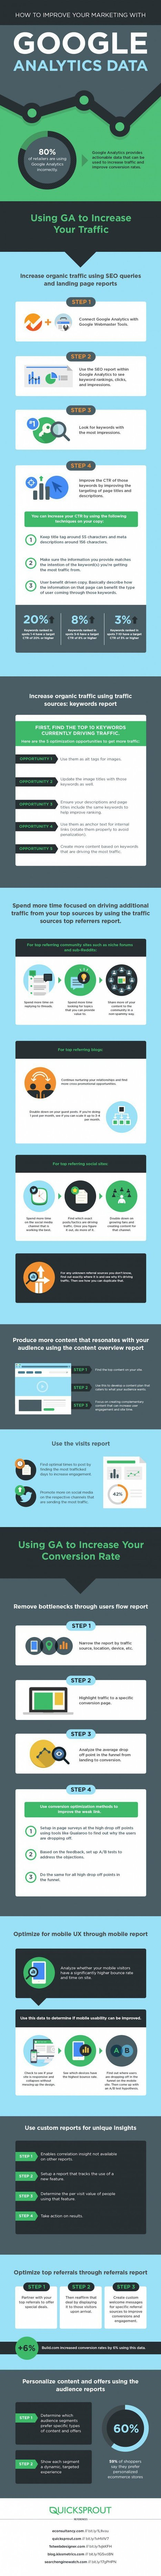 Google Analytics Infographic to improve your Marketing | Disruptive Entrepreneurship & Innovation | Scoop.it